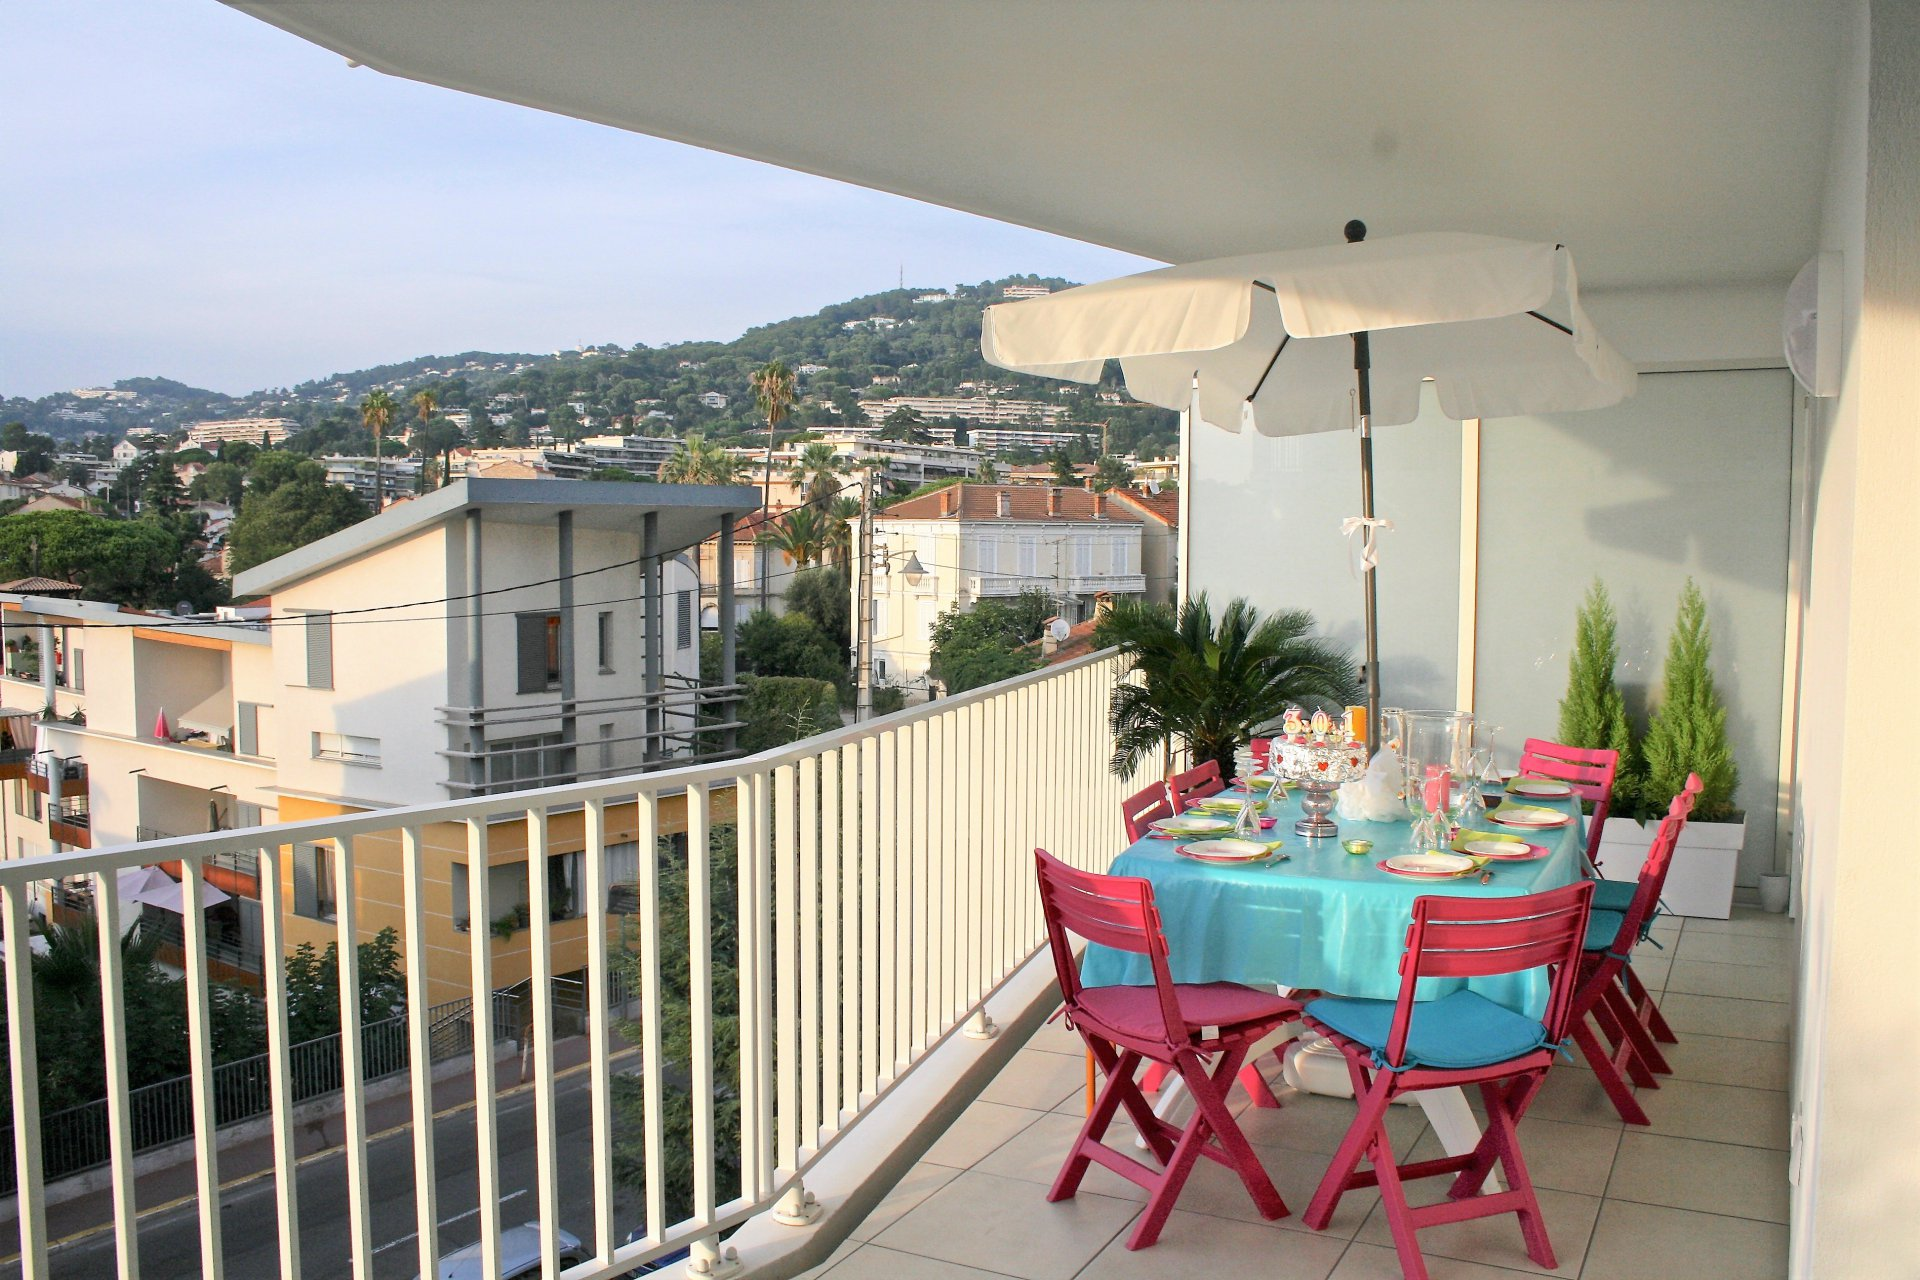 Cannes Center - 1 bedroom apt 47sqm - large terrace - nice open view